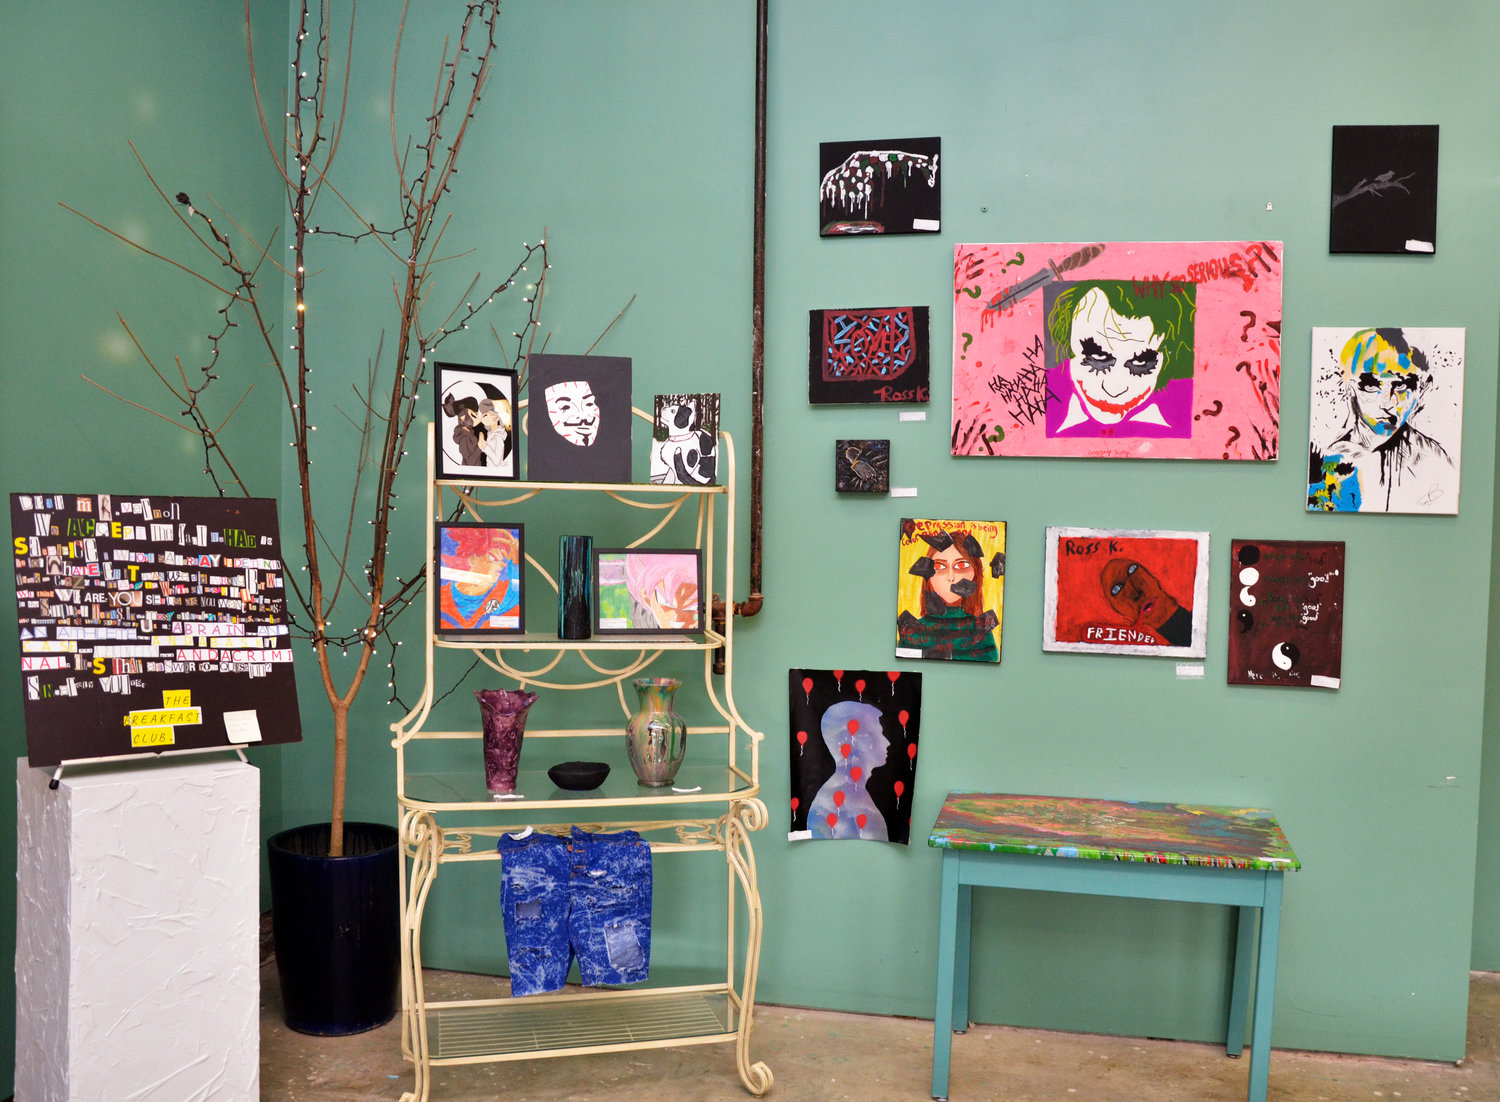 The Peppercorn in downtown Siler City offered part of its space for an art show by students at Jordan-Matthews High School.